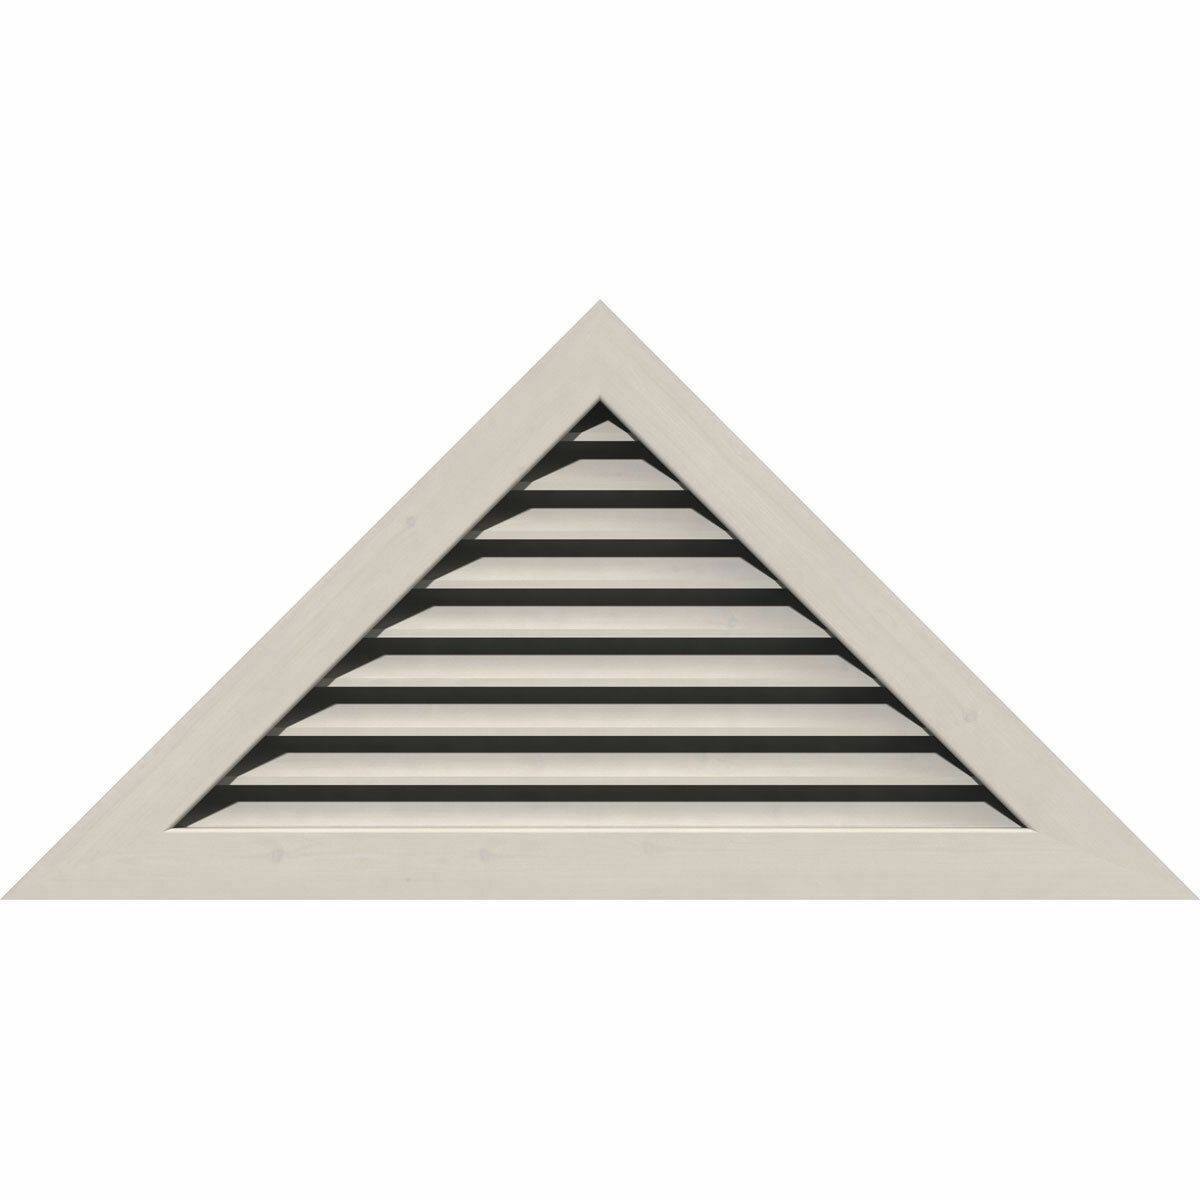 Ekena Millwork Pitch Wood Triangle Recessed Mount Gable Vent Wayfair